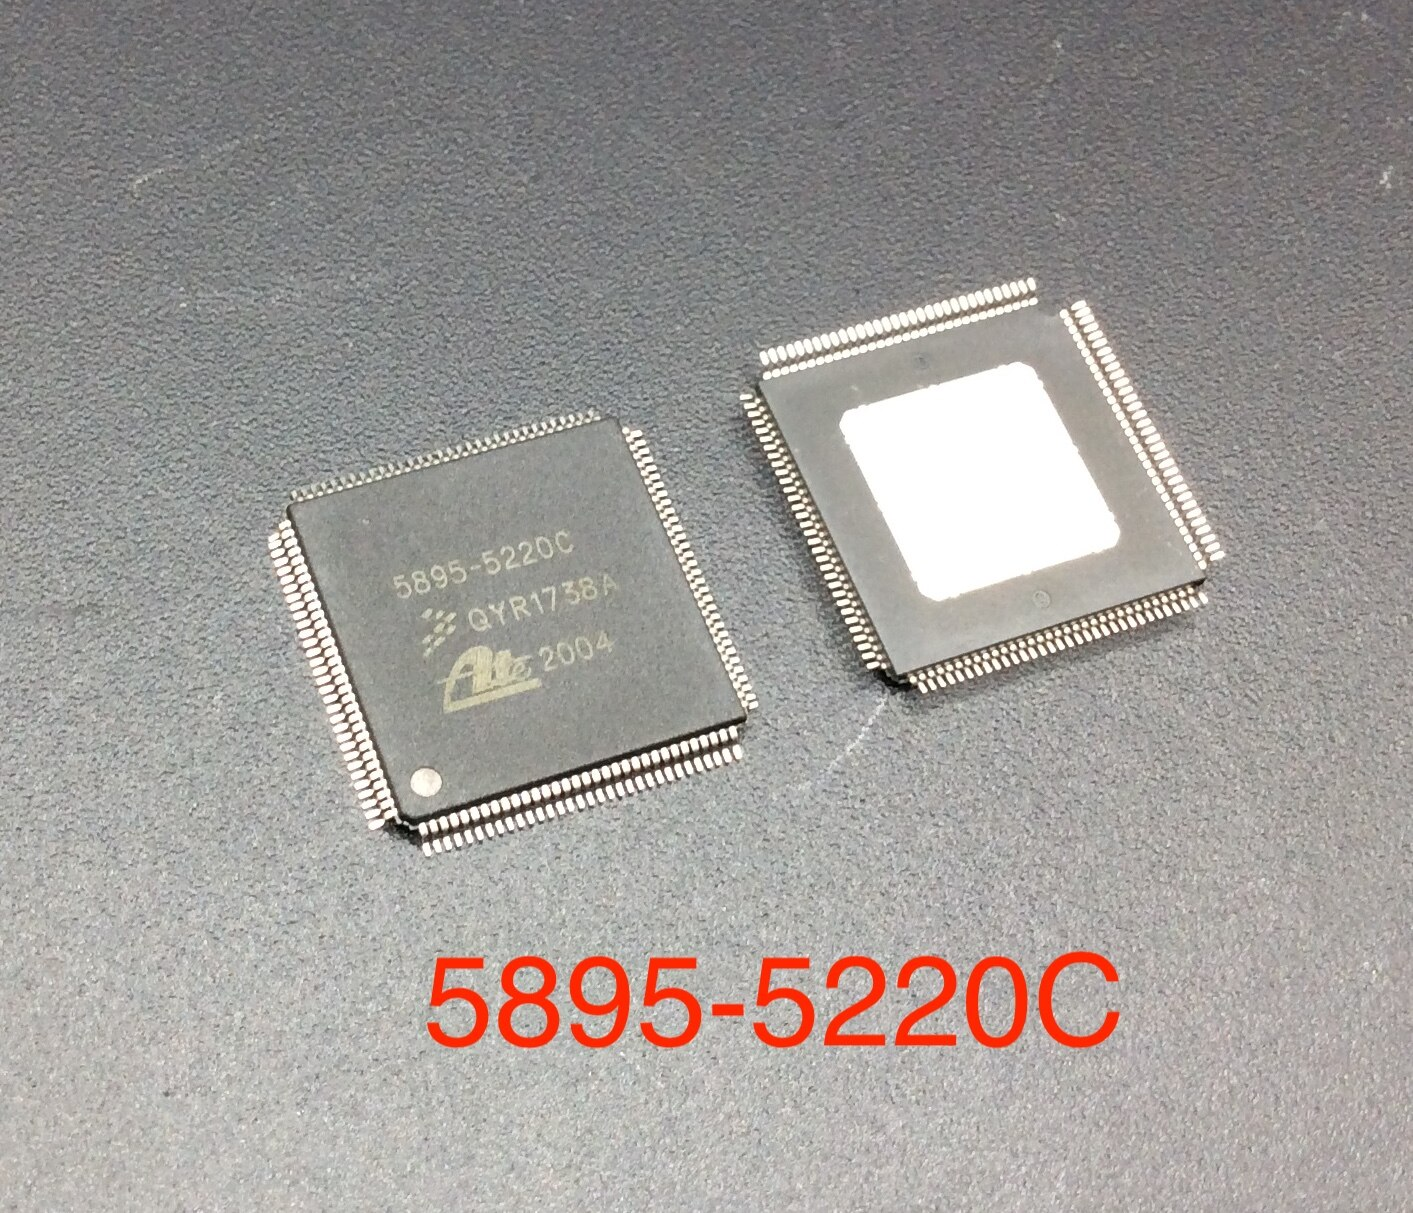 1pc 5895-5220C for Mercedes-Benz Volkswagen Ford eco sport ABS board IC transponder chip brand new